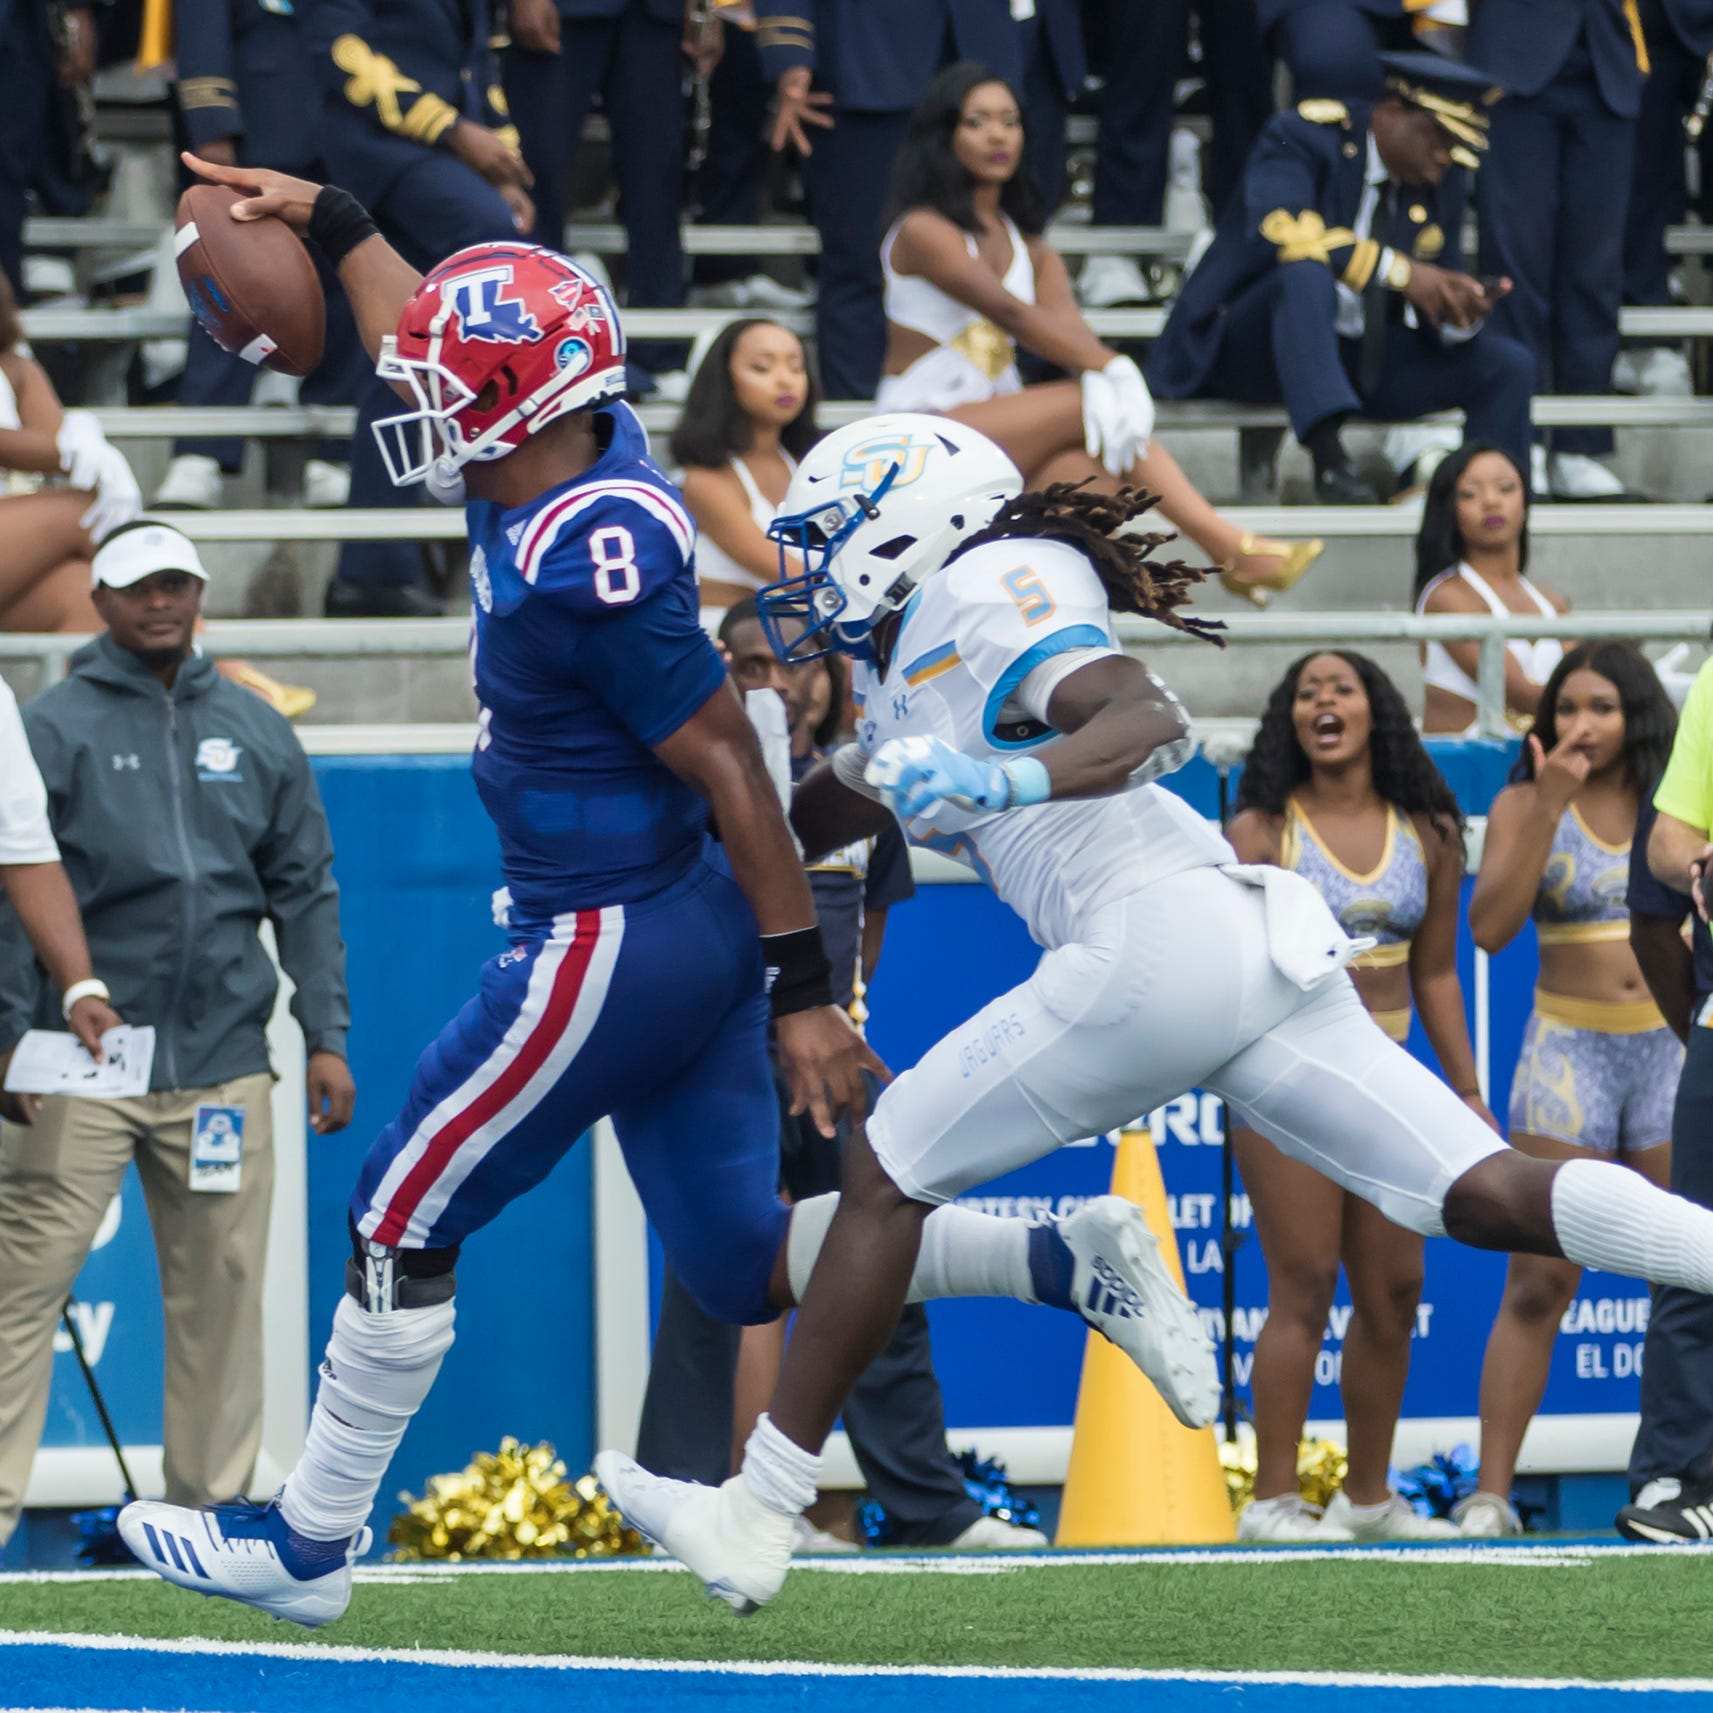 Smith's career night leads LA Tech in rout over Southern in home opener